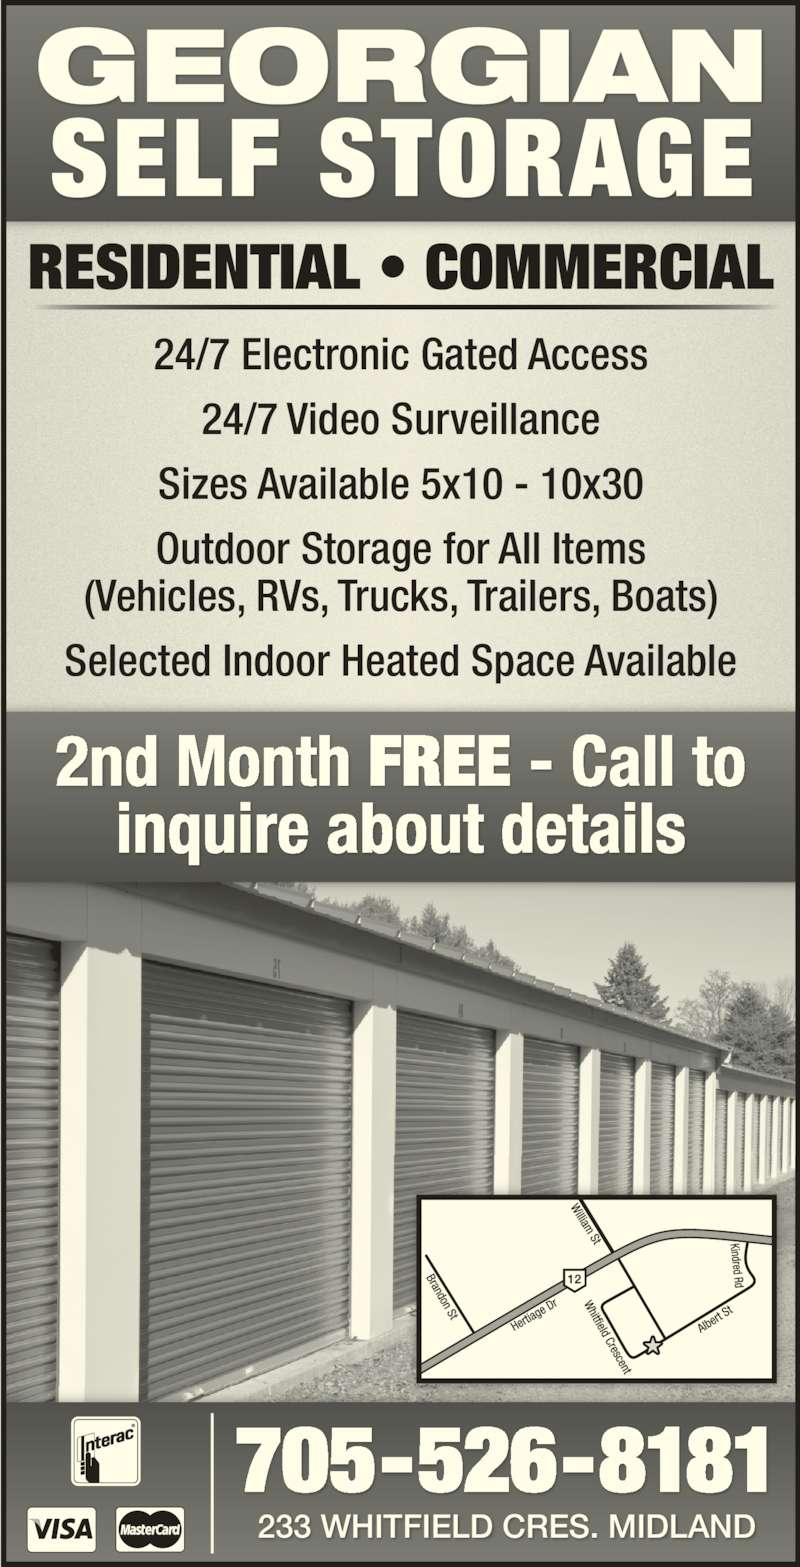 Georgian Self Storage (7055268181) - Display Ad - RESIDENTIAL • COMMERCIAL 24/7 Electronic Gated Access 24/7 Video Surveillance Sizes Available 5x10 - 10x30 Outdoor Storage for All Items (Vehicles, RVs, Trucks, Trailers, Boats) Selected Indoor Heated Space Available 2nd Month FREE - Call to inquire about details 705-526-8181 233 WHITFIELD CRES. MIDLAND